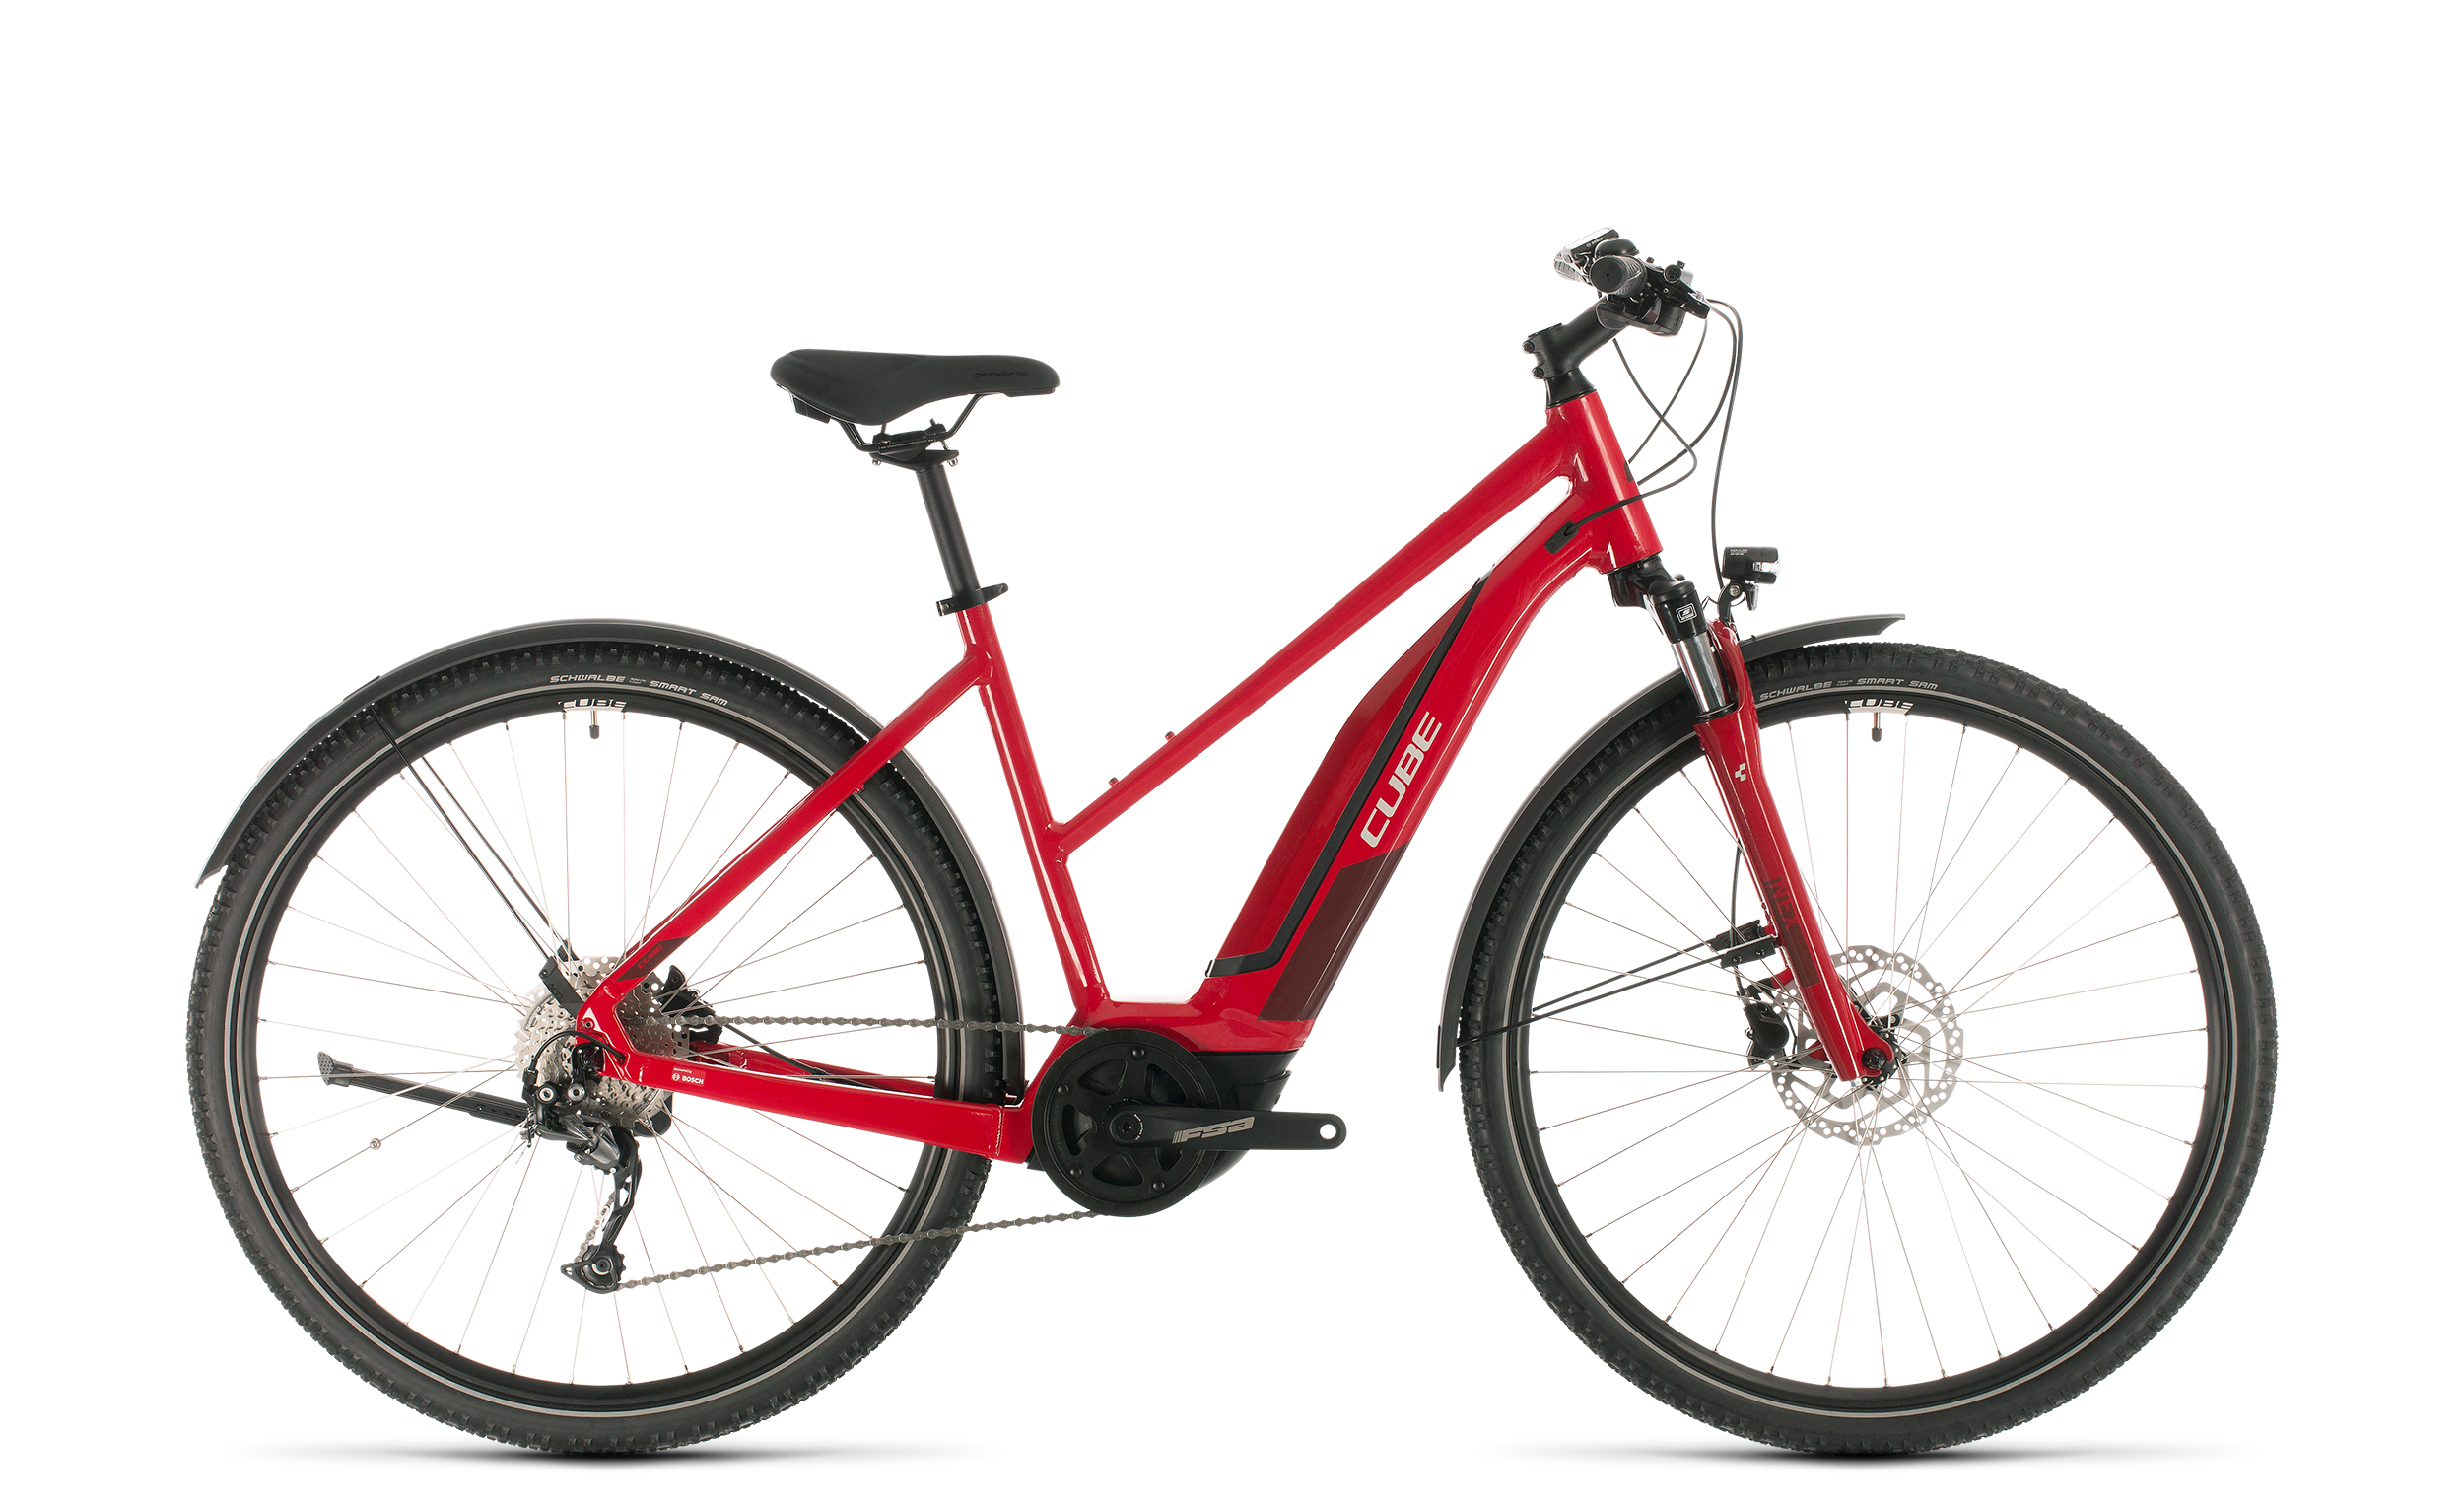 https://w8w5m3f8.stackpathcdn.com/16777/vtc-electrique-nature-hybrid-one-400-ou-500wh-allroad-cadre-mixte.jpg